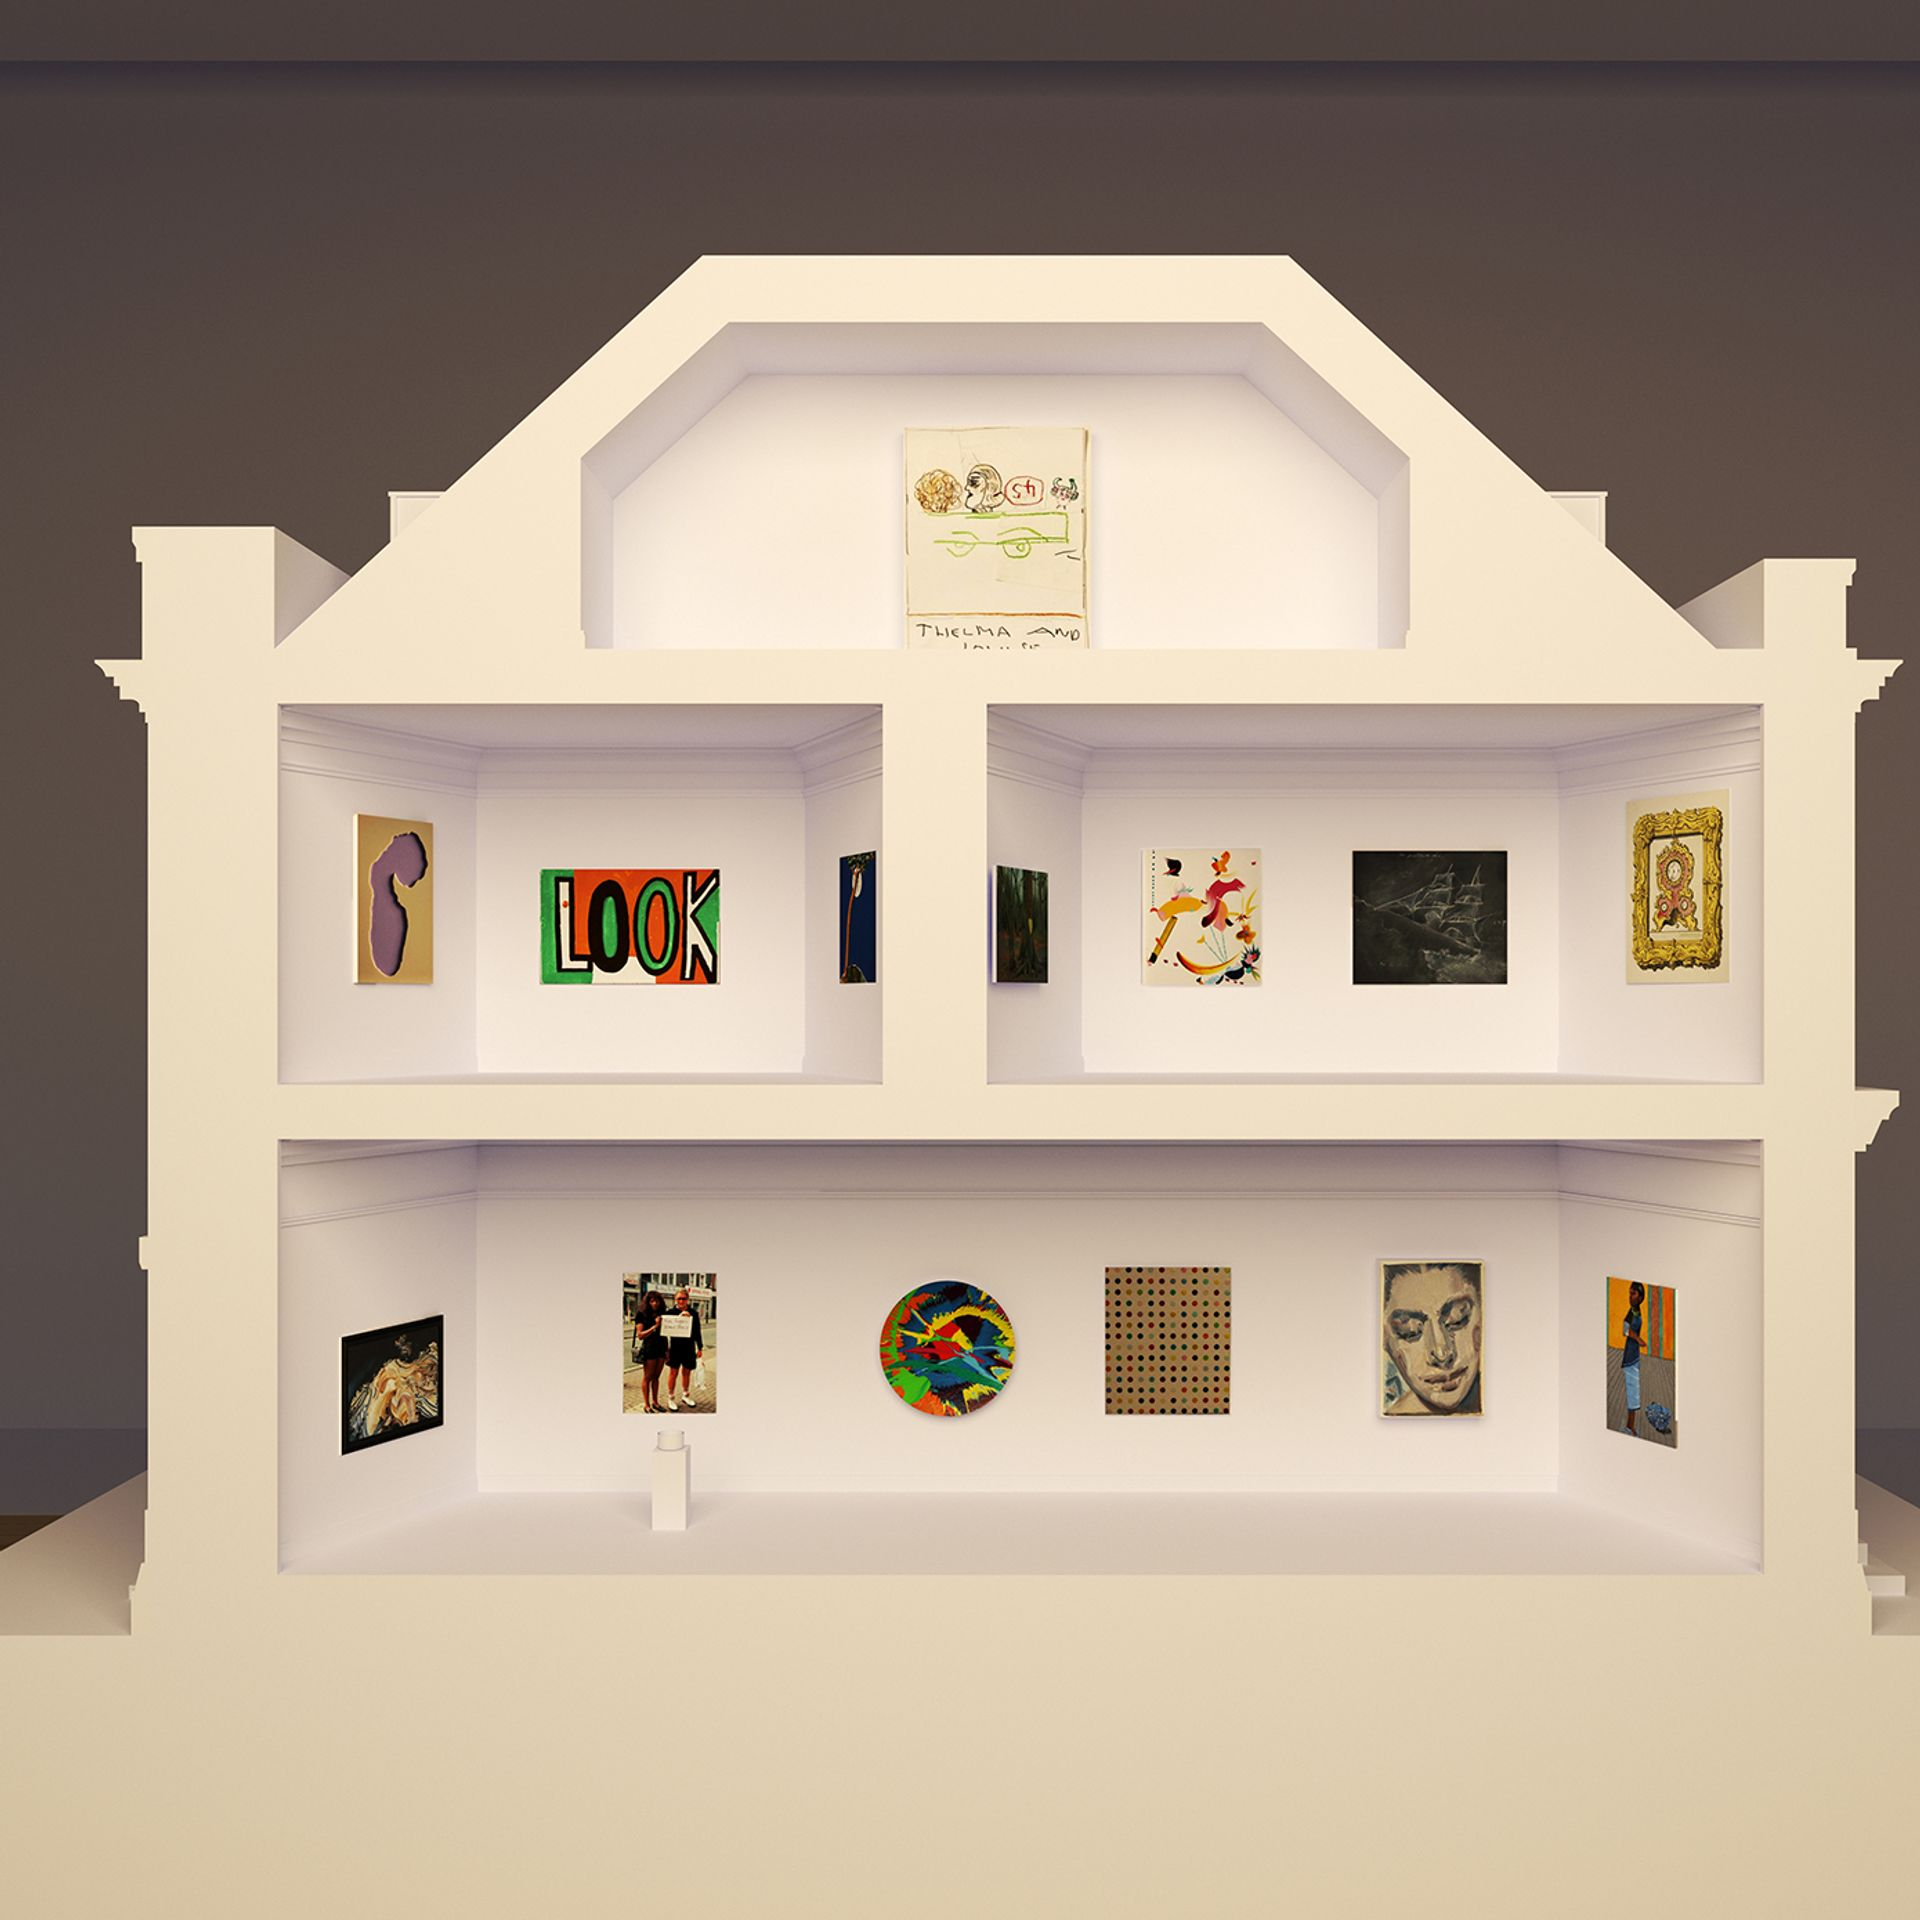 Pallant House Gallery's The 2021 Model Art Gallery Photograph Barney Hindle © Pallant House Gallery